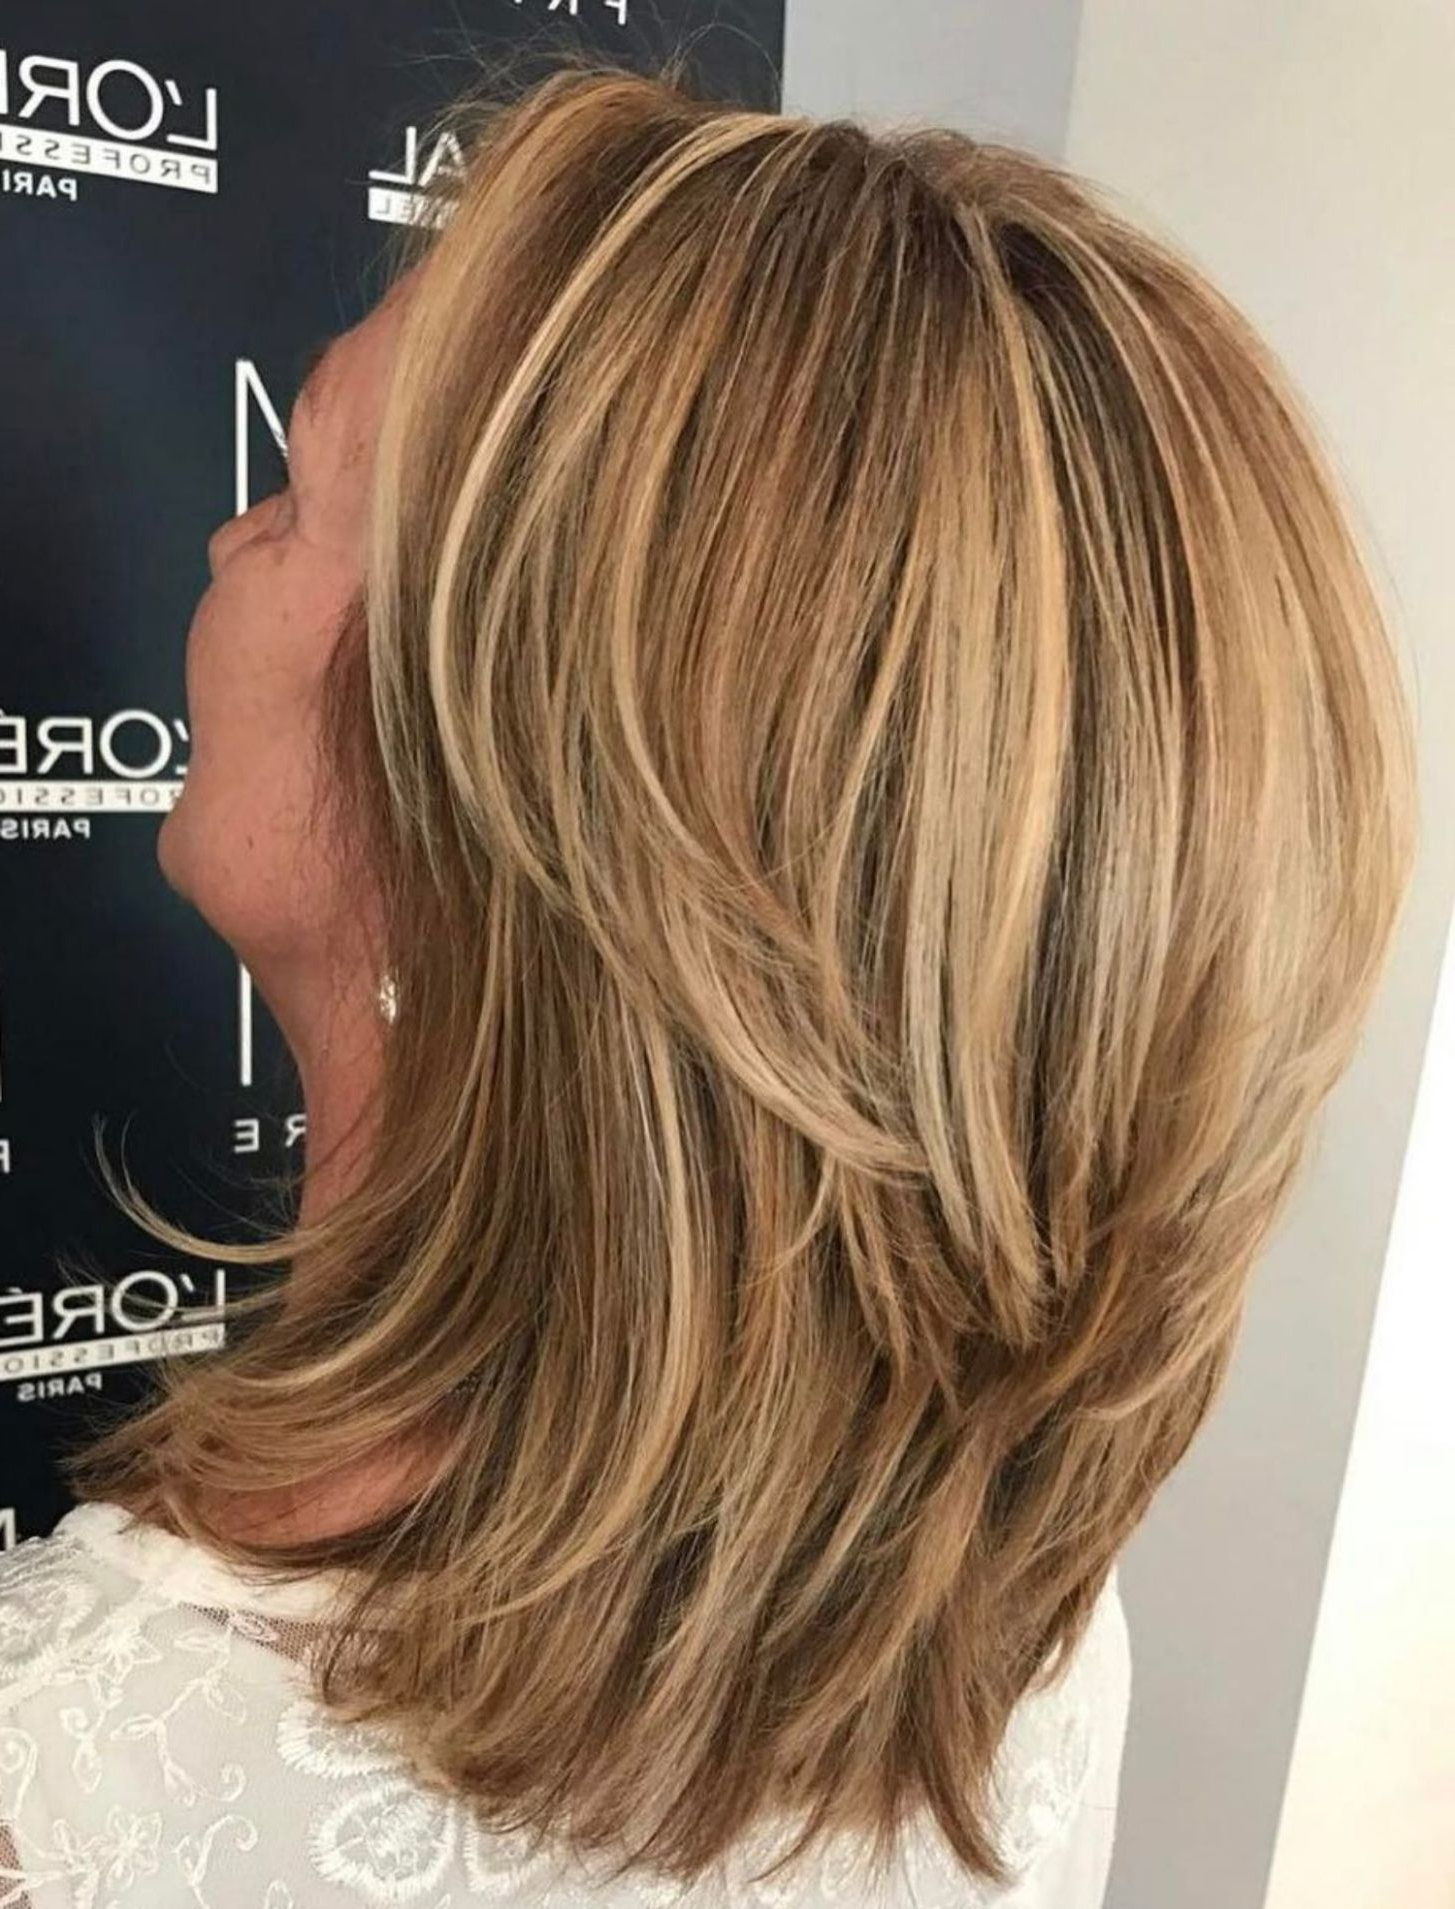 2017 Parisian Shag Haircuts For Thin Hair Within 50 Modern Haircuts For Women Over 50 With Extra Zing In (View 14 of 20)